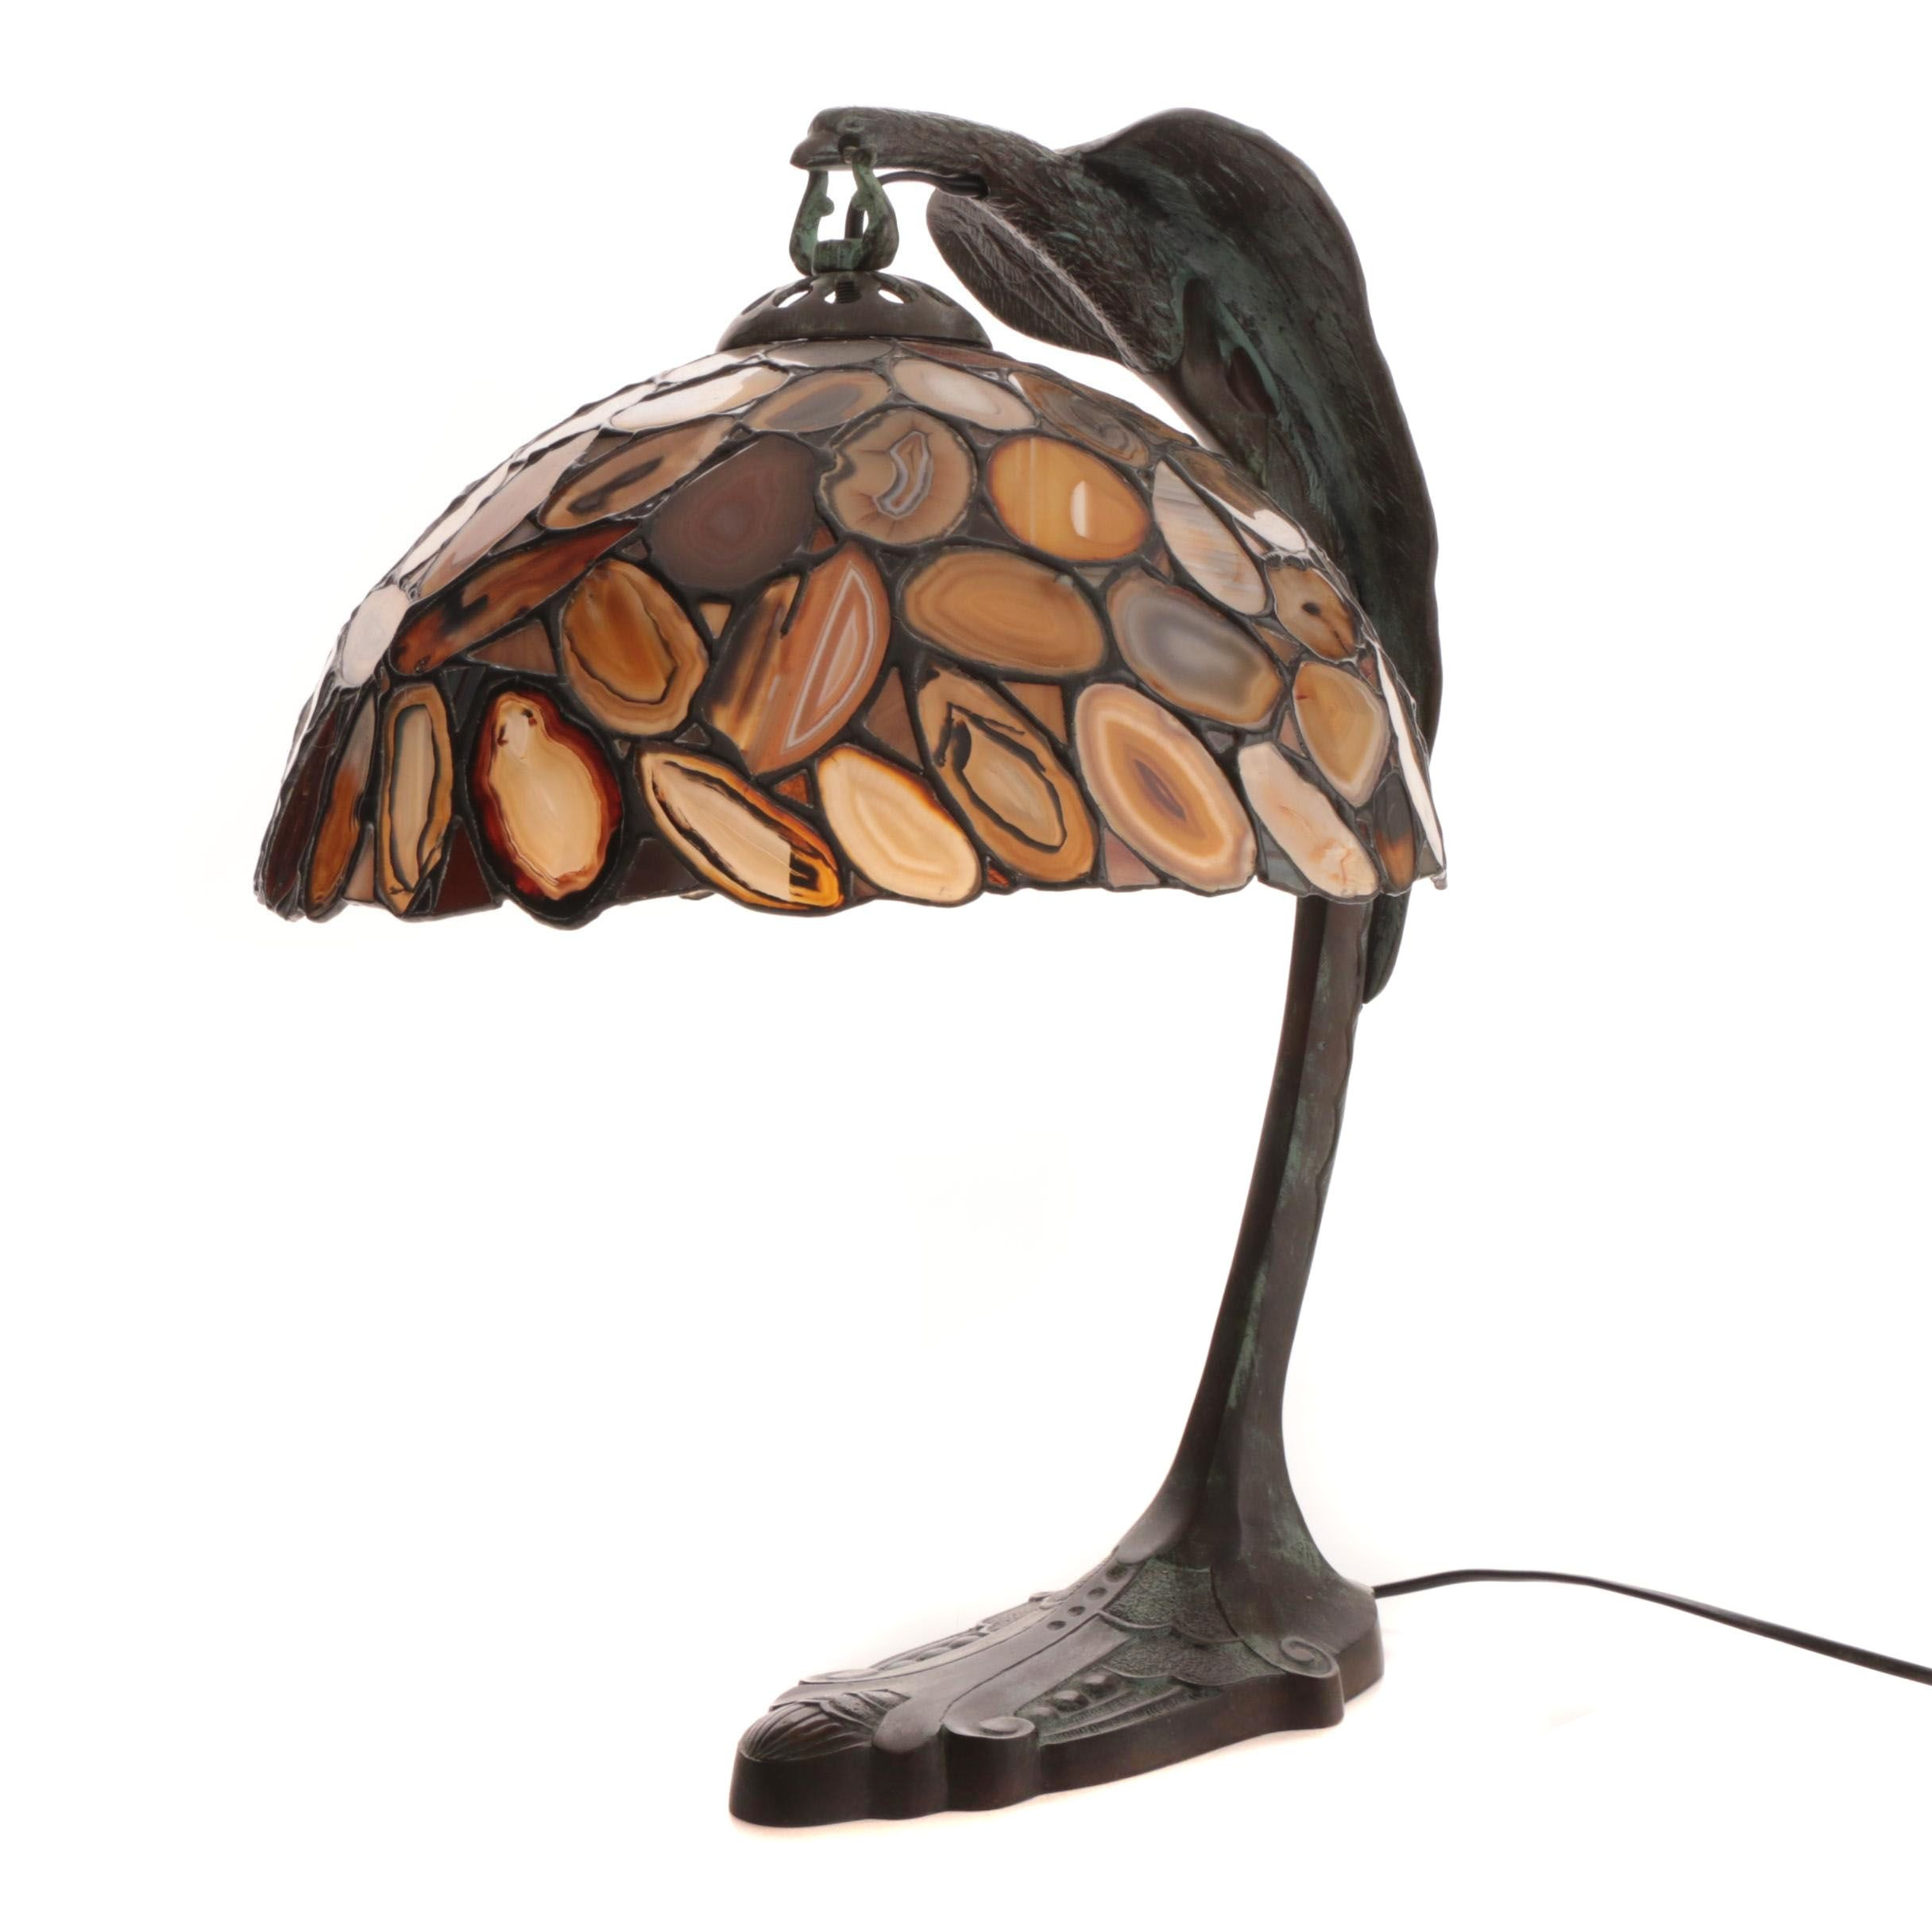 Bronze Patinated Curved Metal Bird Form Table Lamp with Sliced Agate Shade